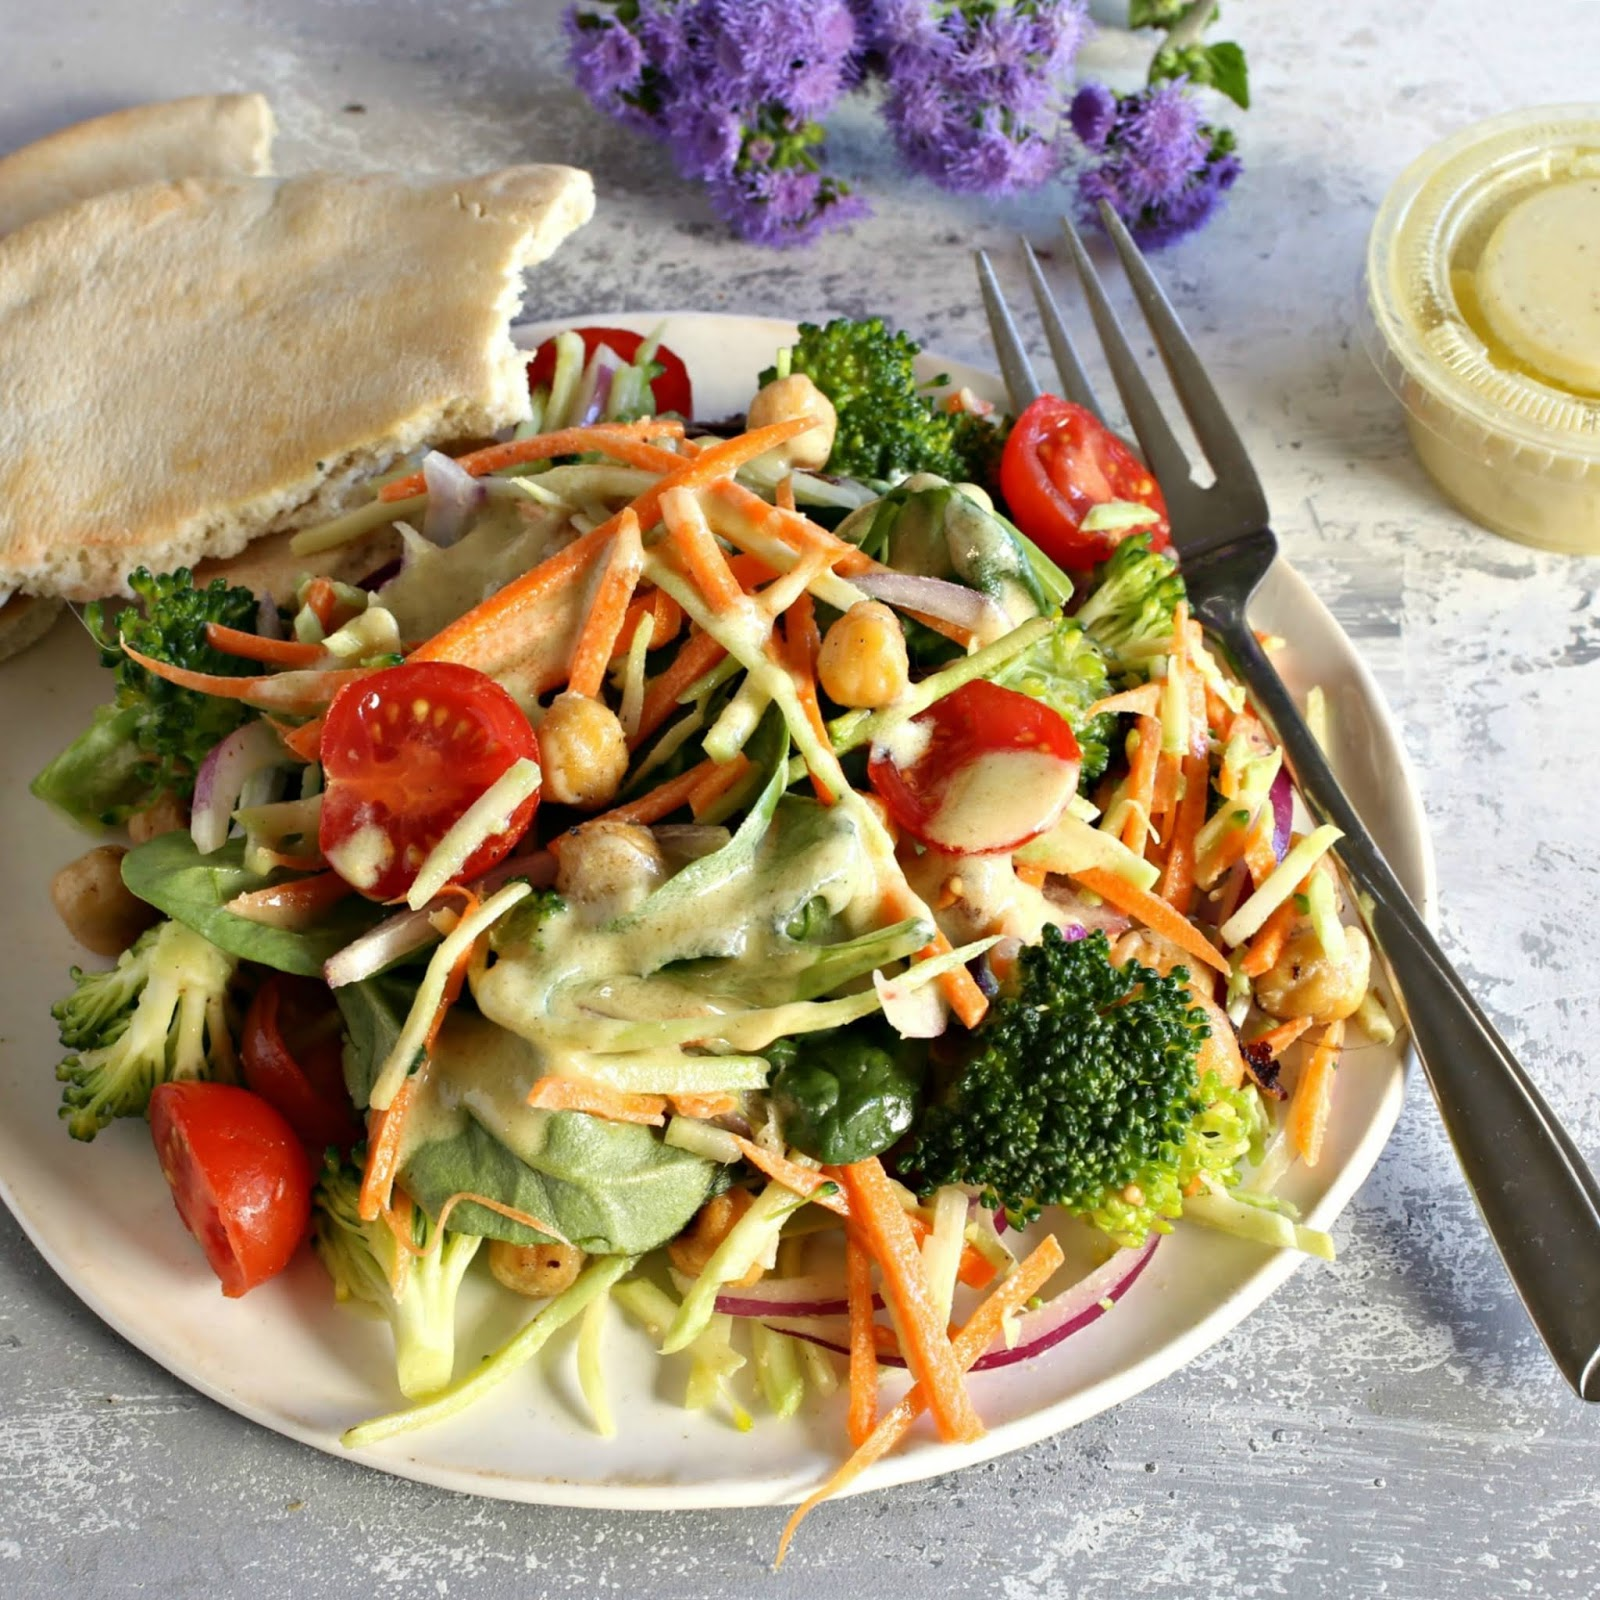 Coleslaw with crispy chickpeas, broccoli and tomatoes in a mustard tahini dressing.